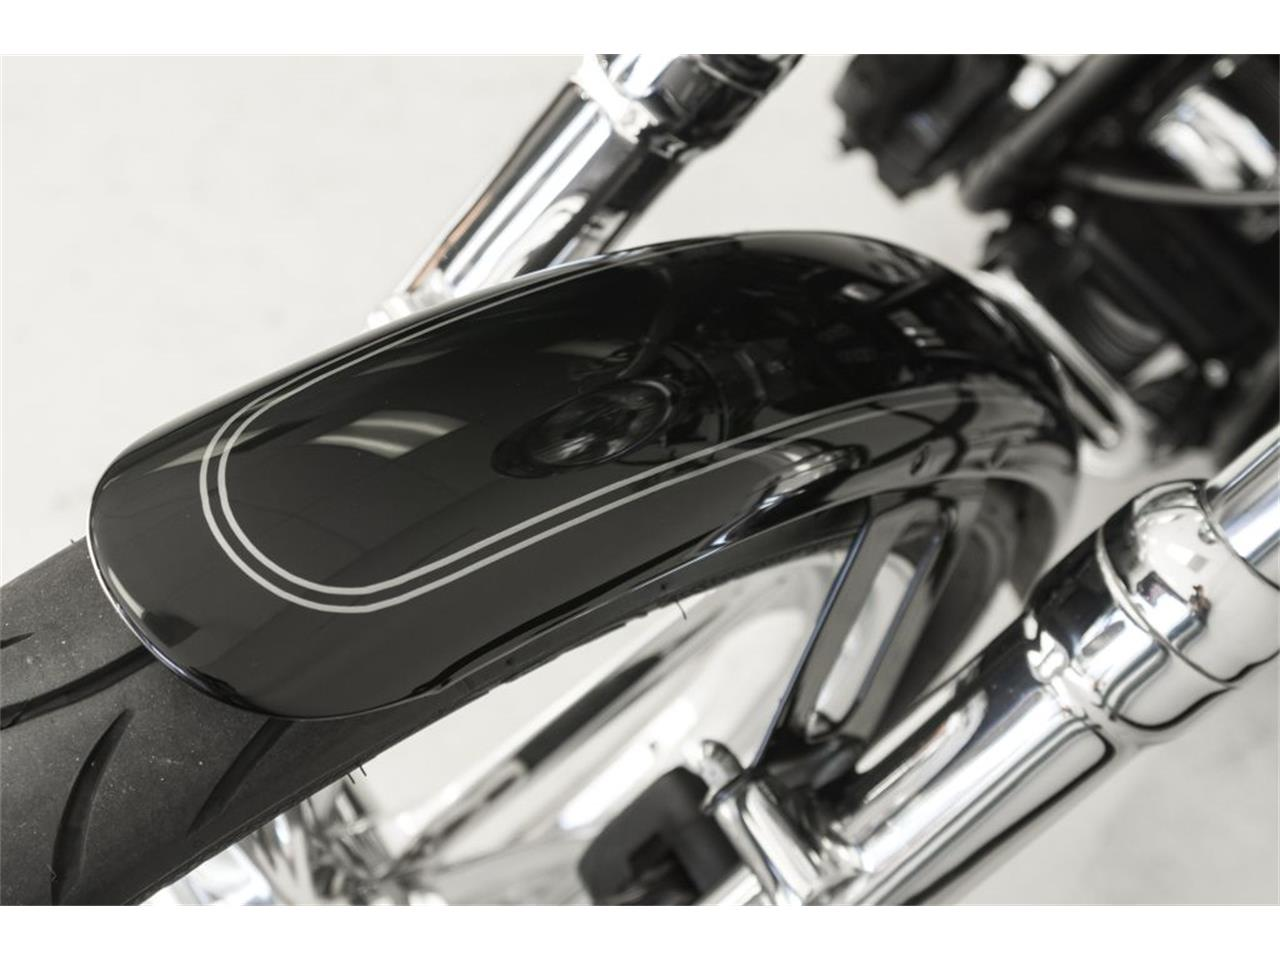 2007 Harley-Davidson Motorcycle (CC-1302412) for sale in Temecula, California